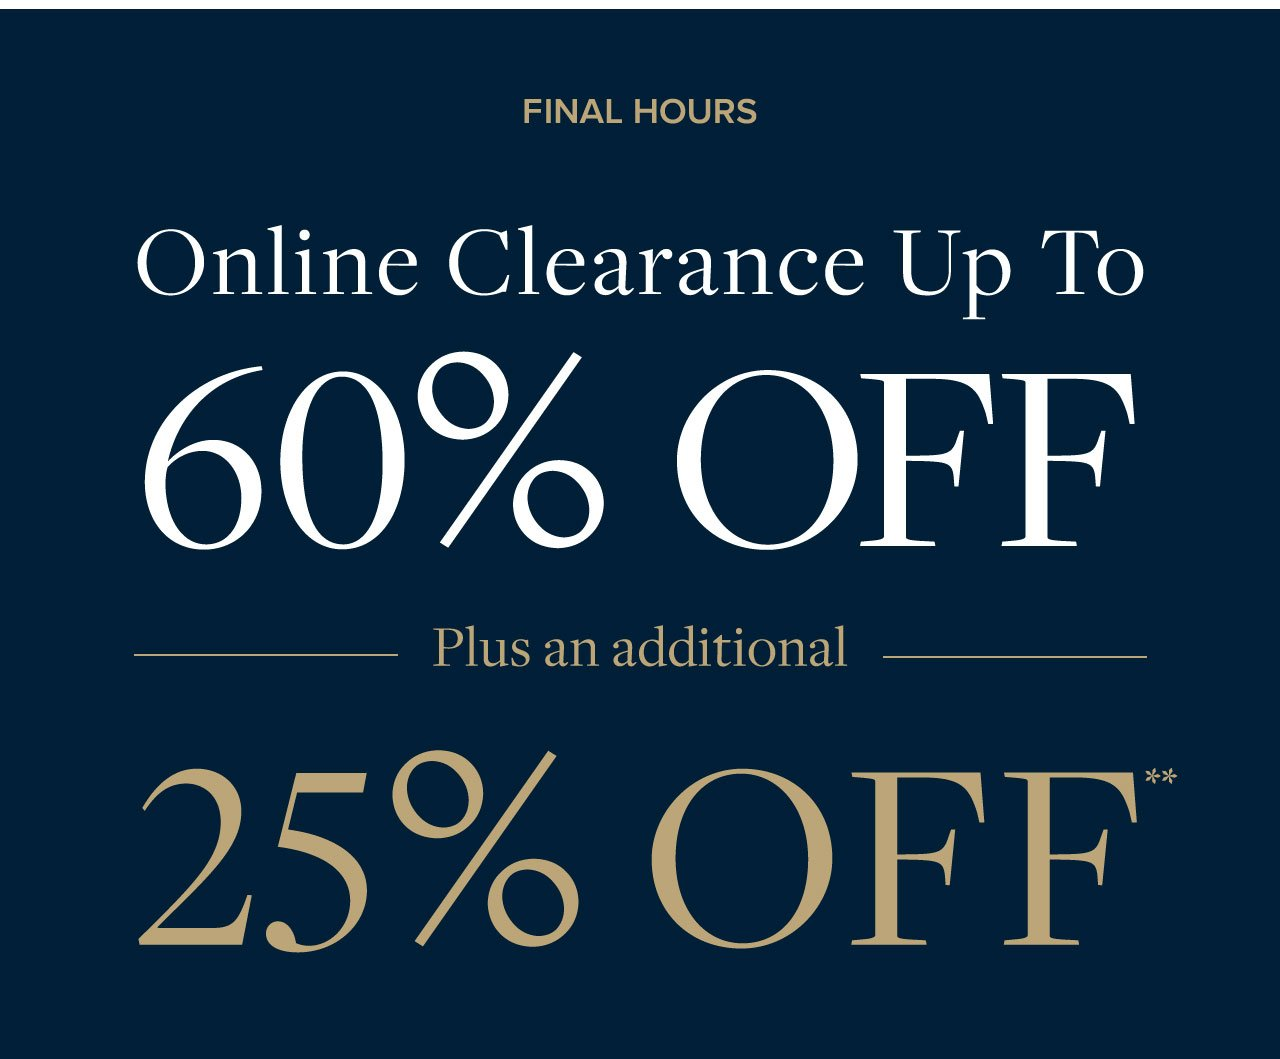 Ends Today Online Clearance Up to 60% Off Plus an additional 25% Off.